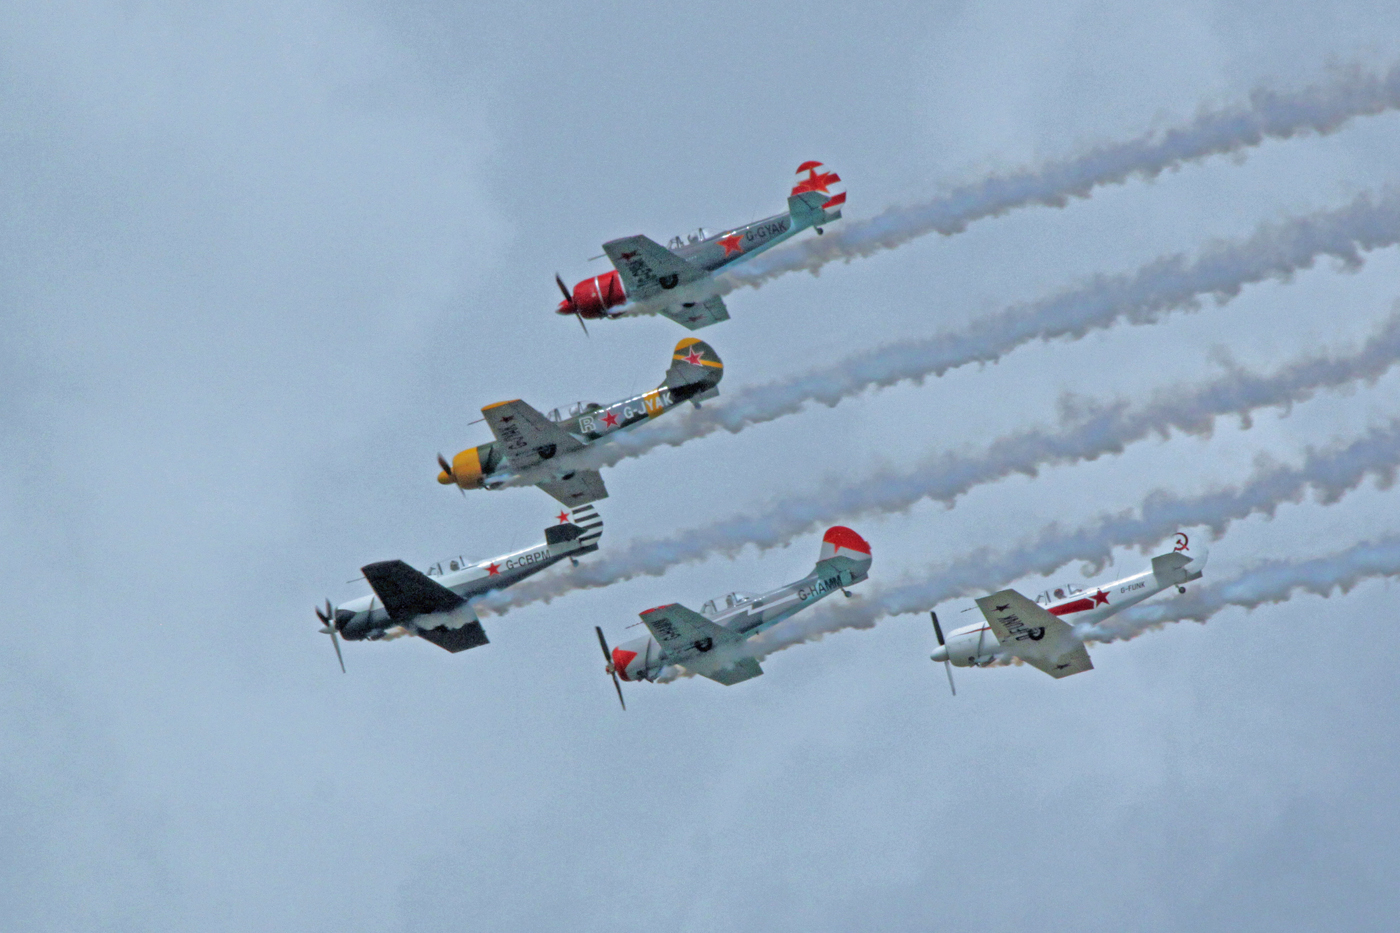 FORMATION FLYING by Don Dobson